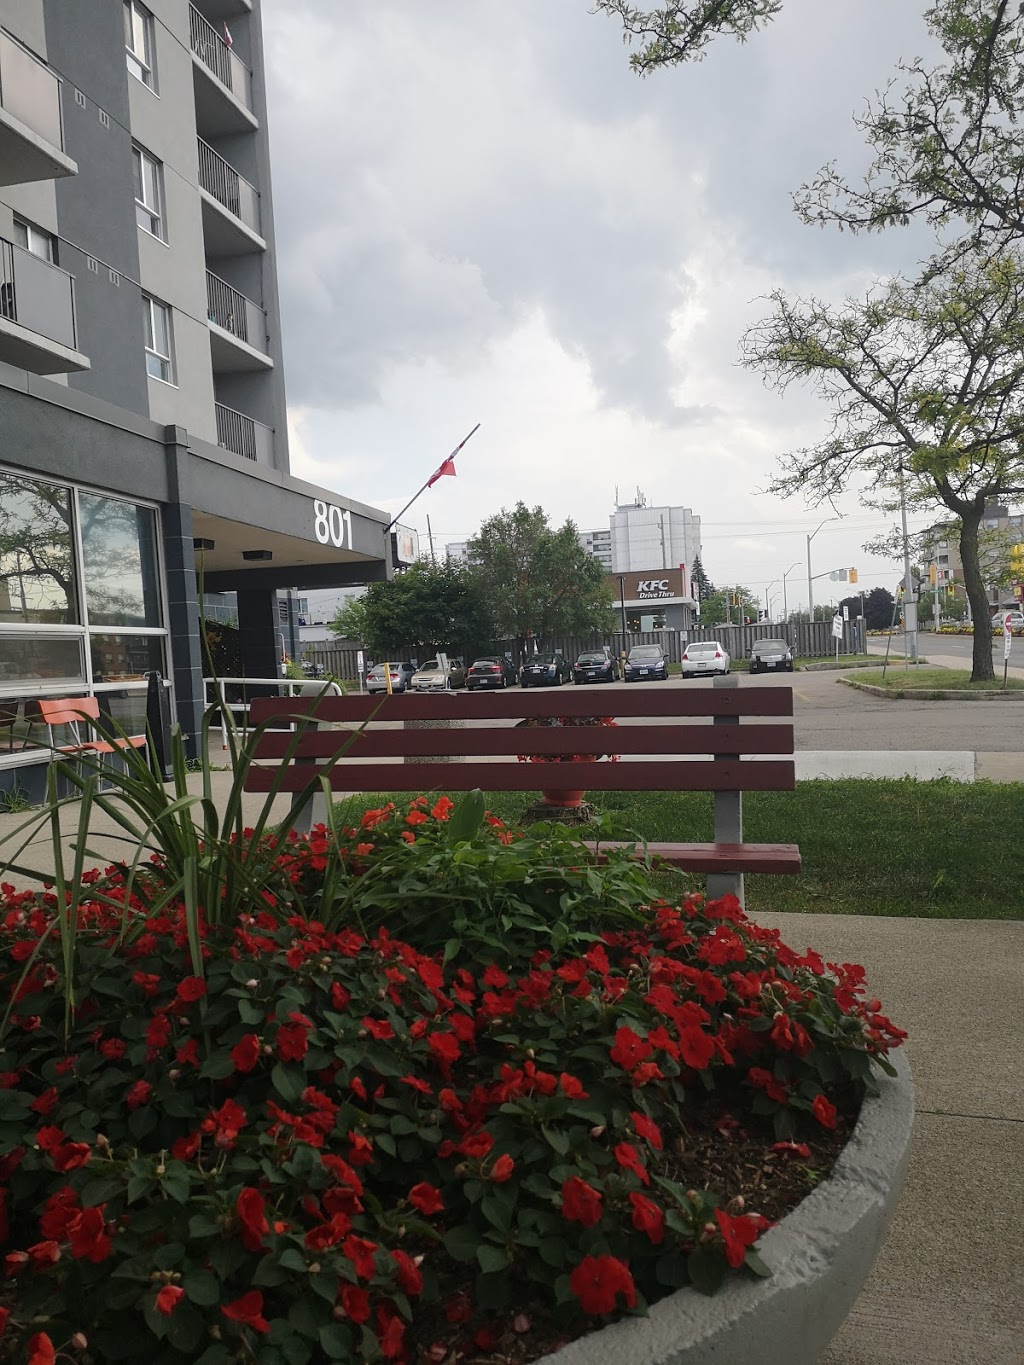 City Housing | point of interest | 801 Upper Gage Ave, Hamilton, ON L8V 4R7, Canada | 9053859141 OR +1 905-385-9141